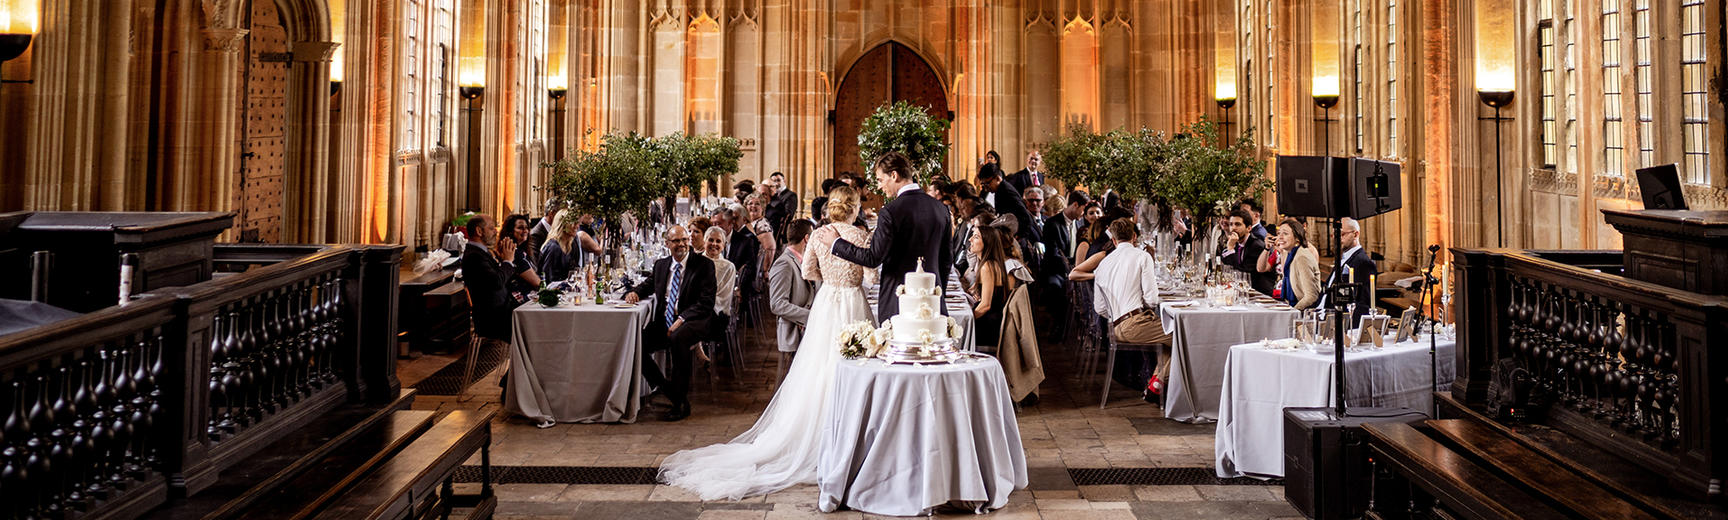 Newlyweds standing in front of dinner tables of wedding guests in Divinity School